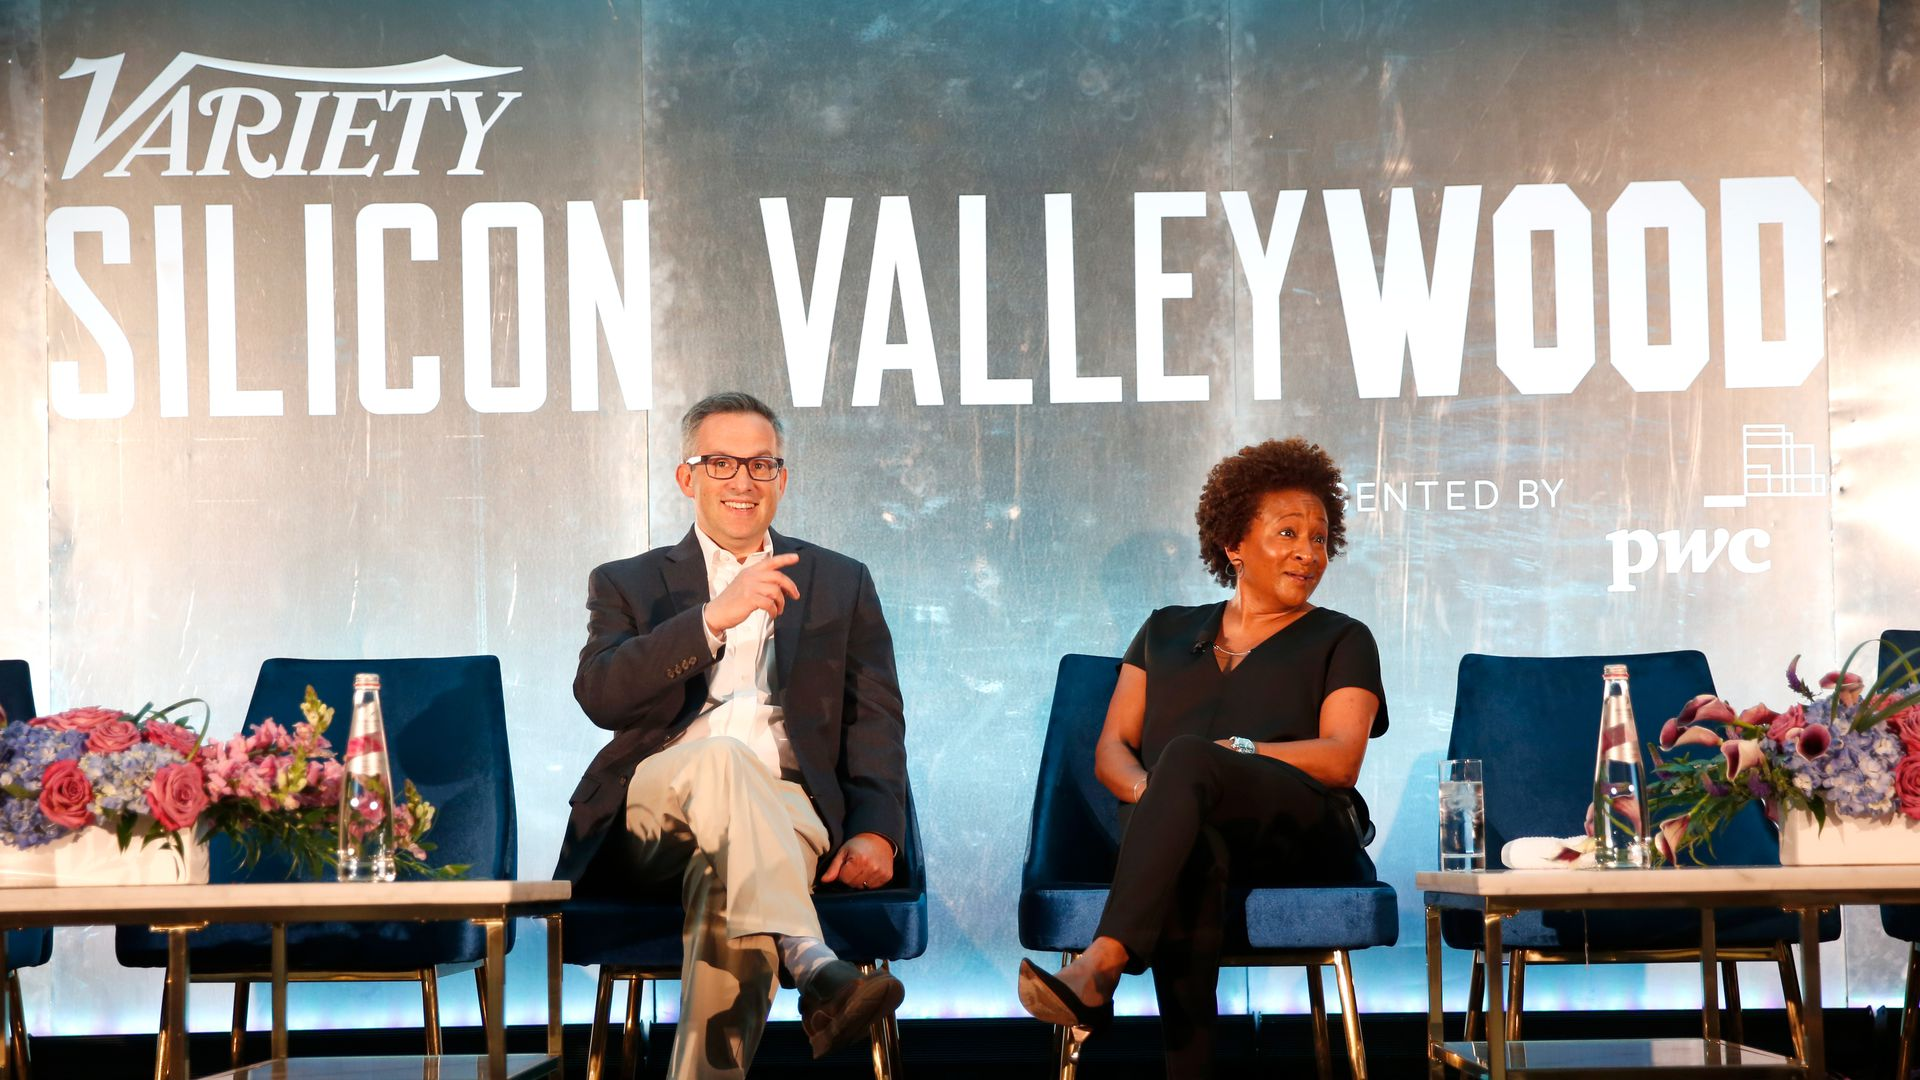 Photo of Co-Editor-In-Chief of Variety, Andrew Wallenstein and Actor, Producer & Comedian Wanda Sykes.